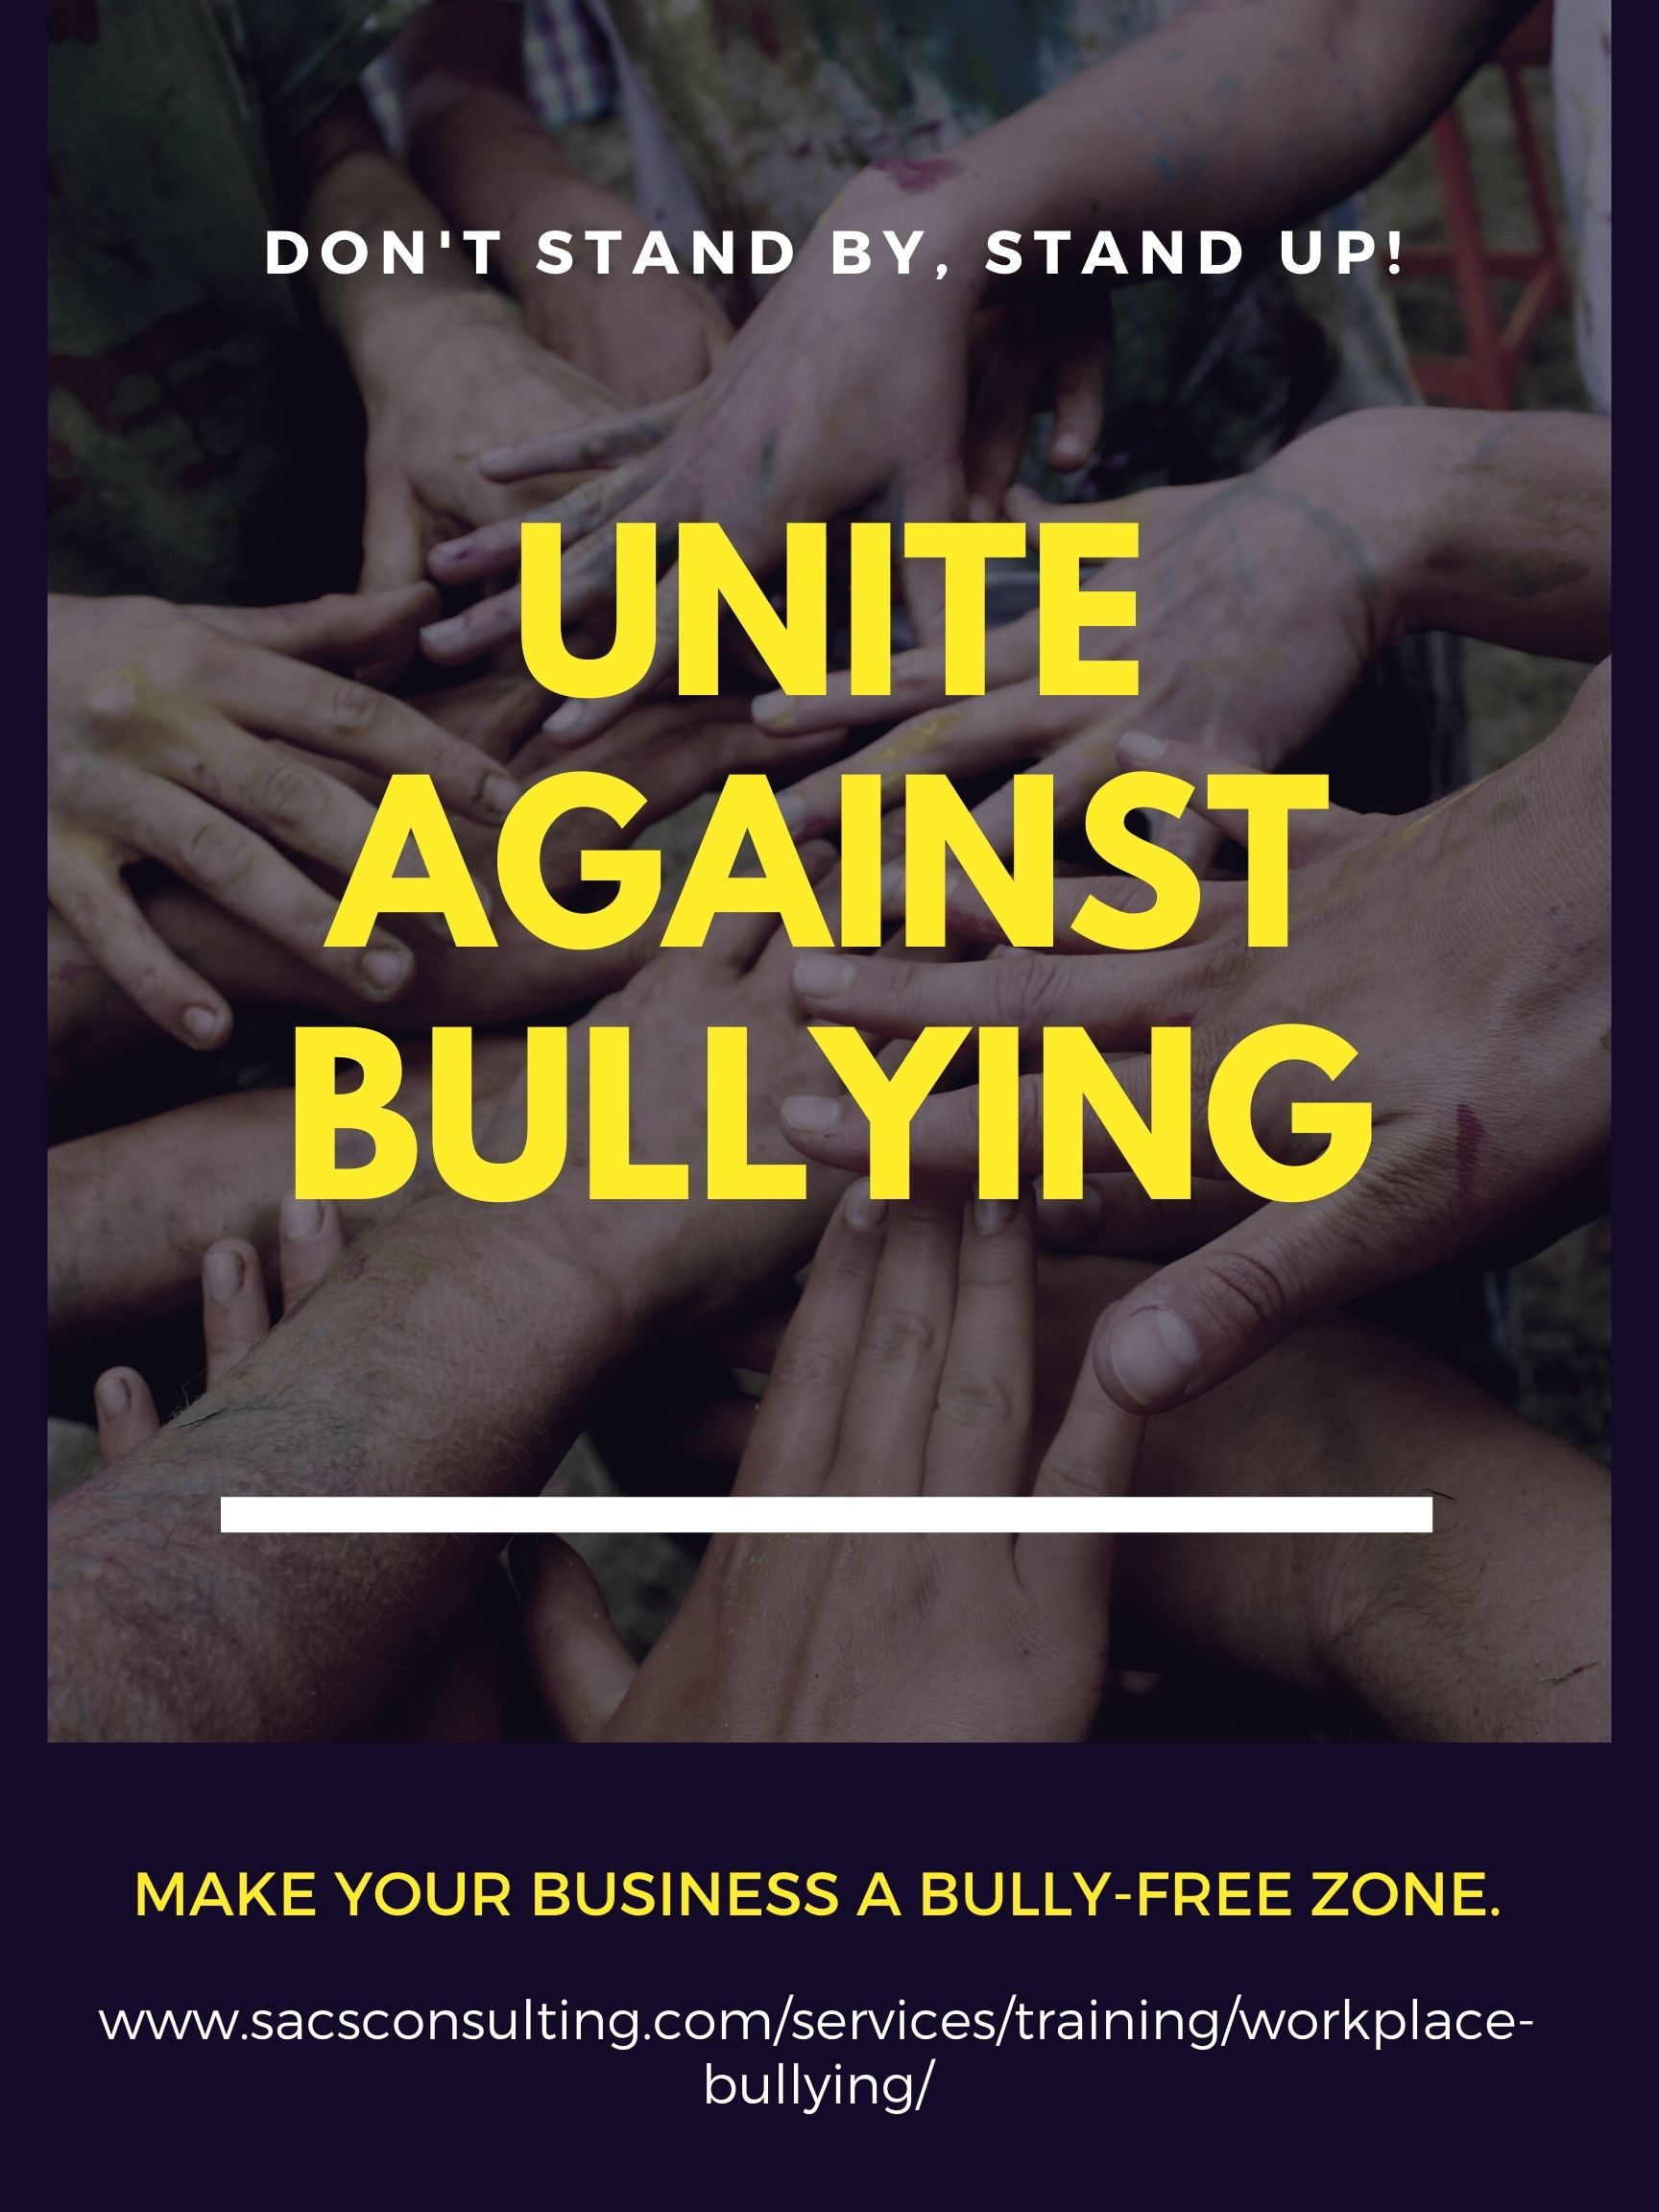 workplace bullying, bullying at work, stop bullying, SACS Consulting and Investigative Services